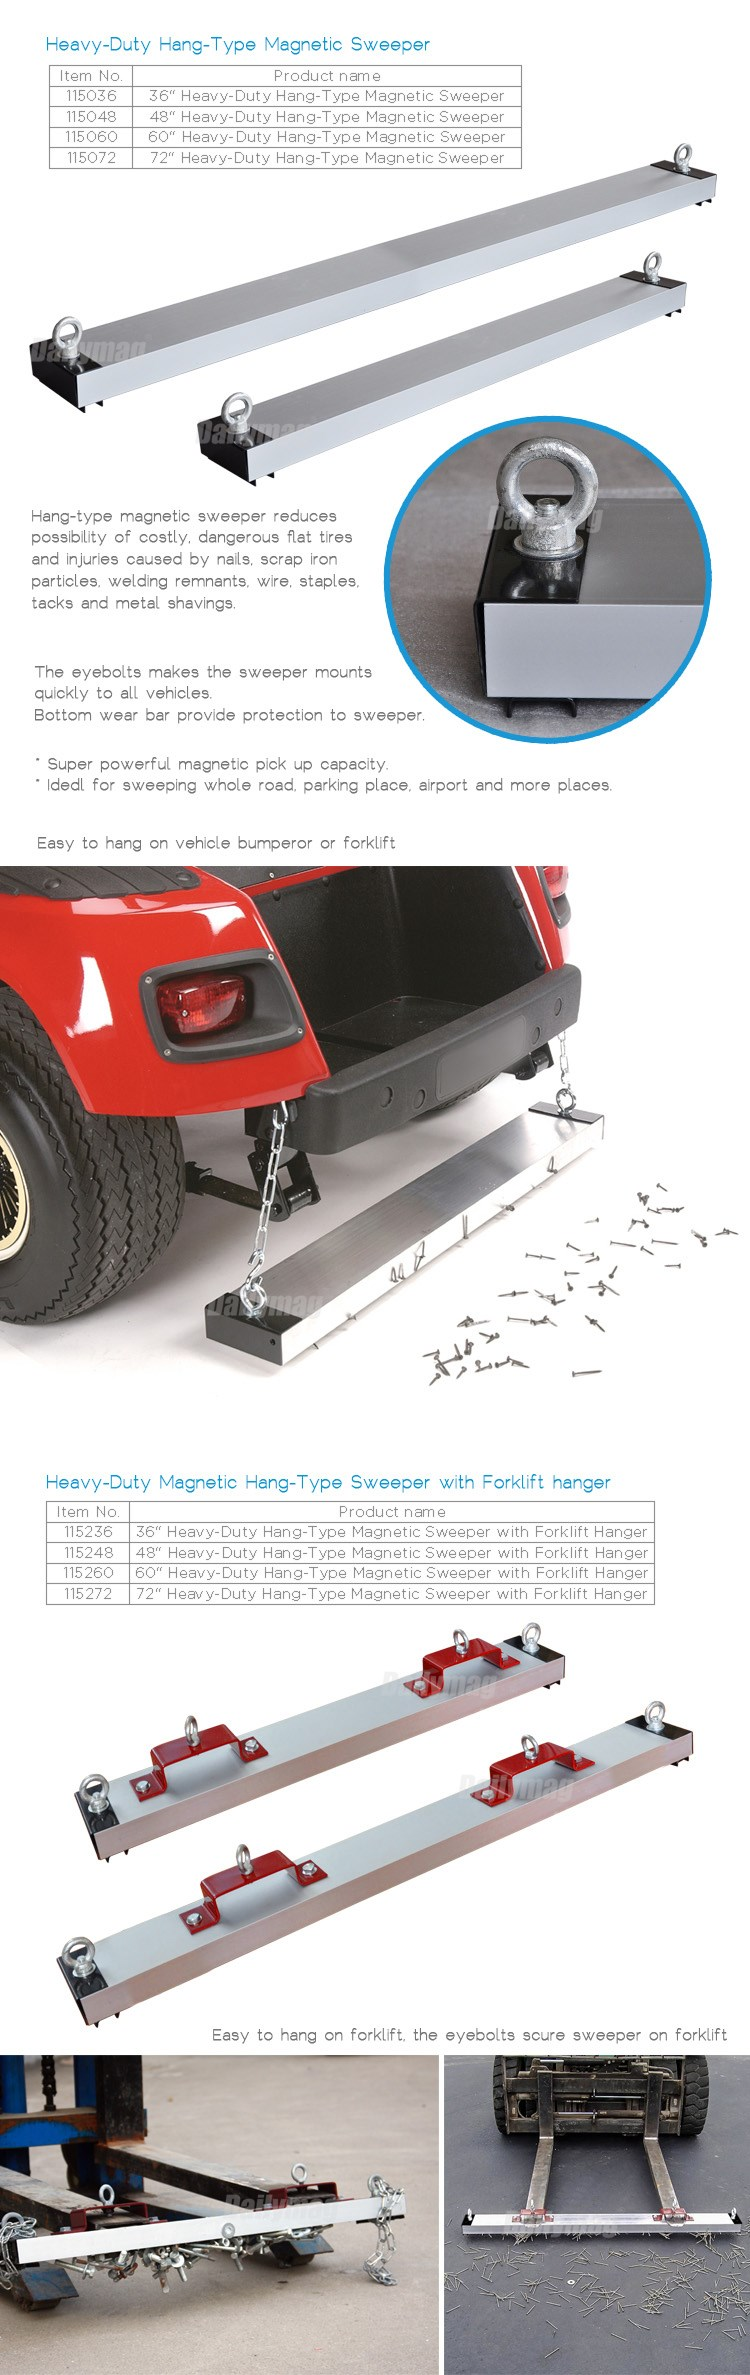 Magnetic Sweeper for Truck